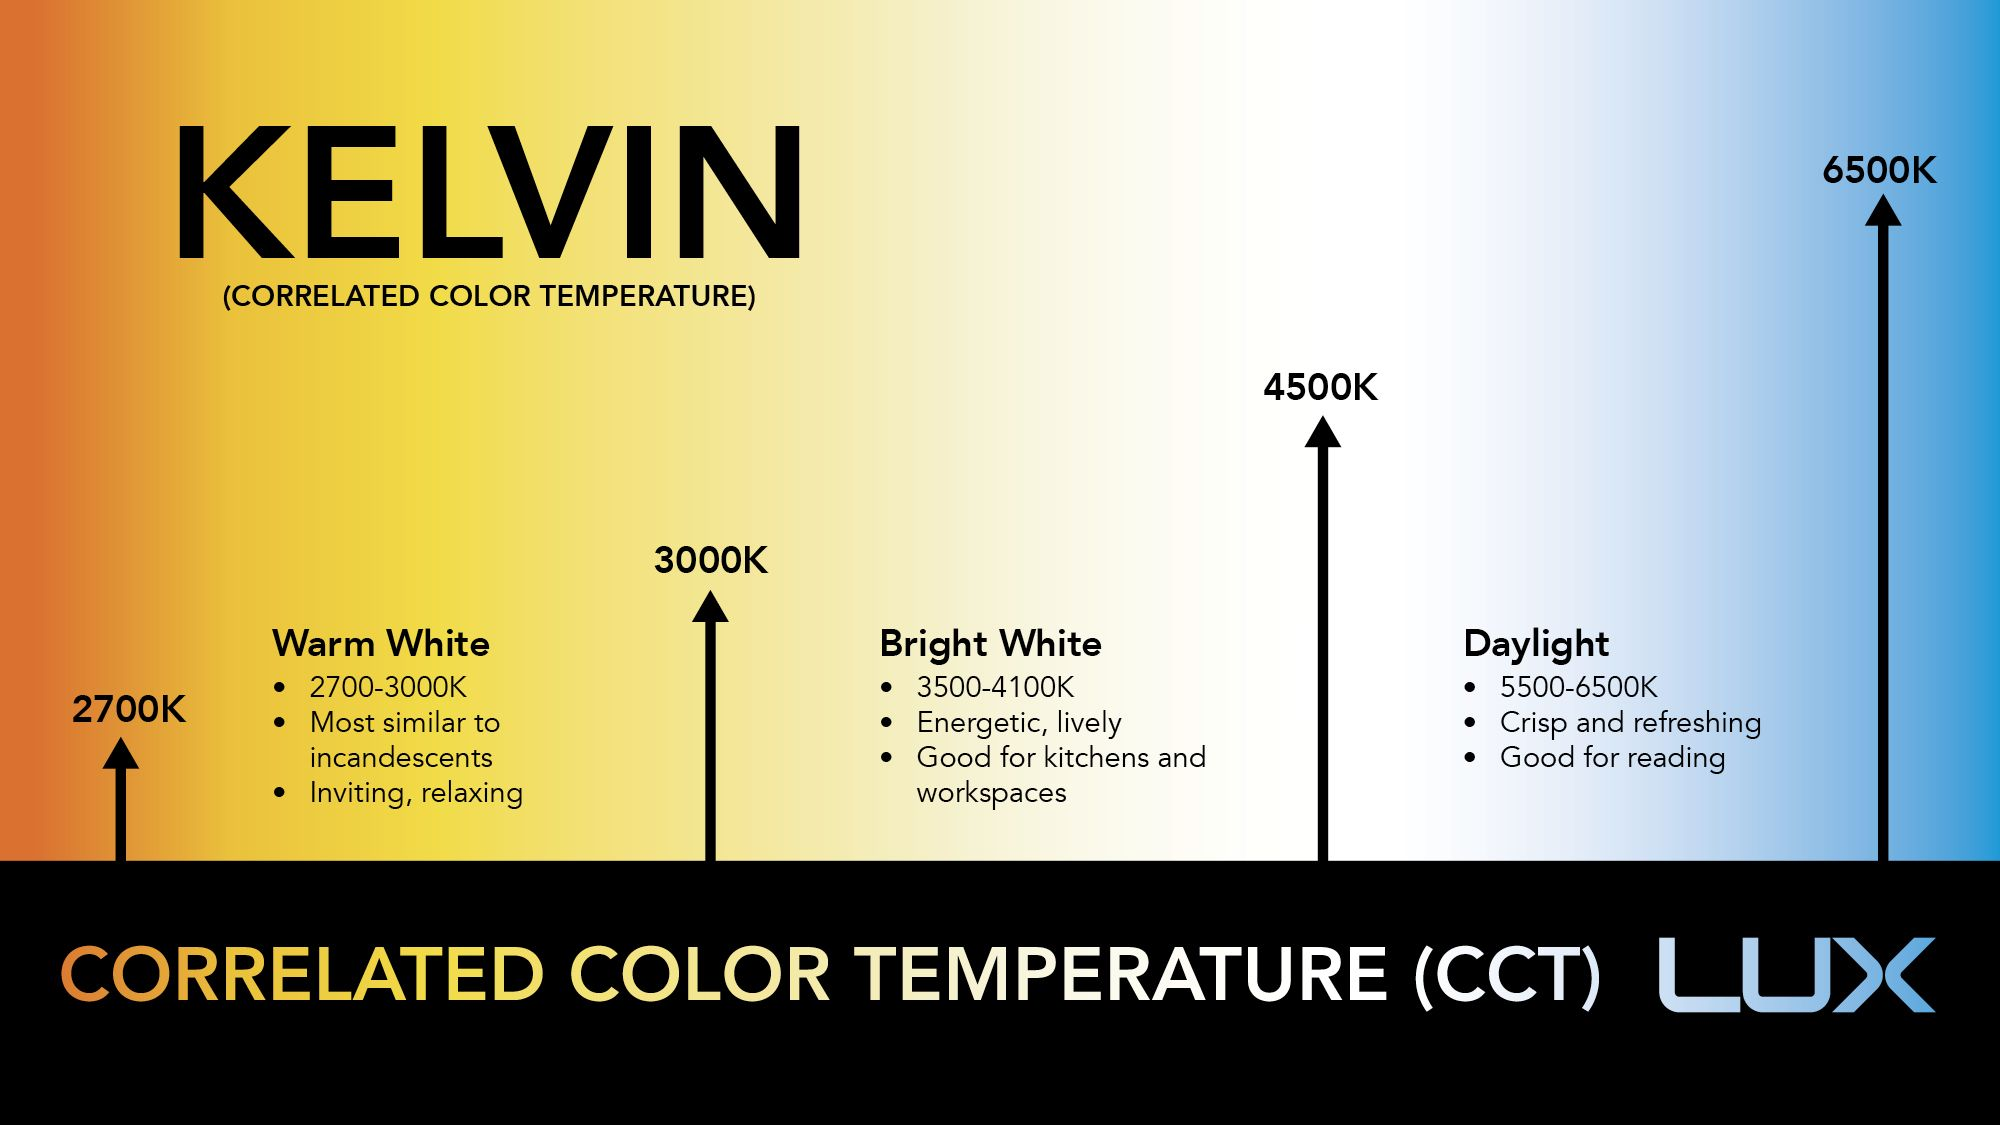 Lux Kelvin Jpg 2000 1125 Temperature Chart Color Temperature Scale Color Temperature